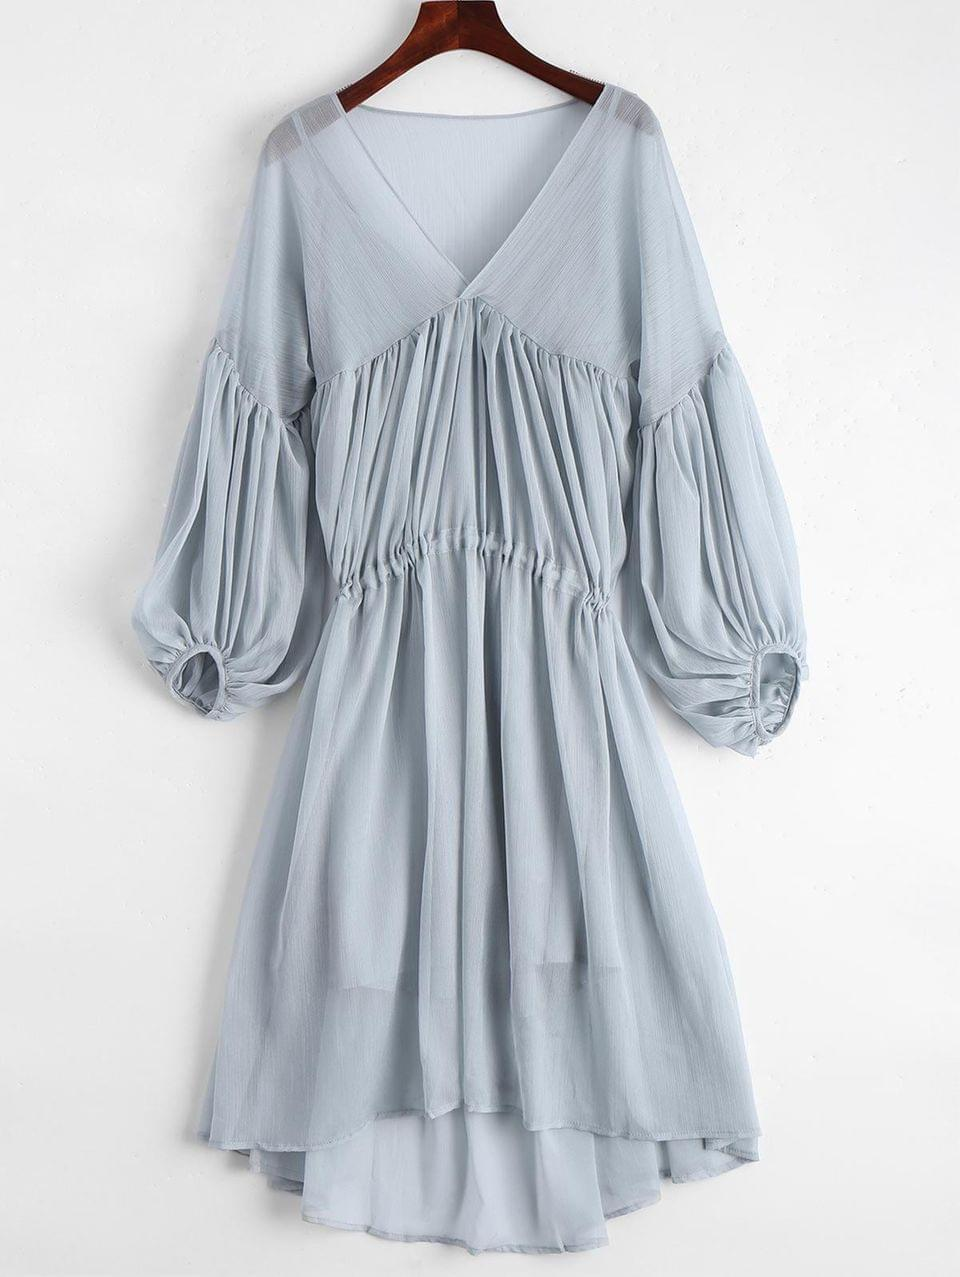 Women's Lantern Sleeve Chiffon High Low Dress With Slip Dress - Blue Gray M